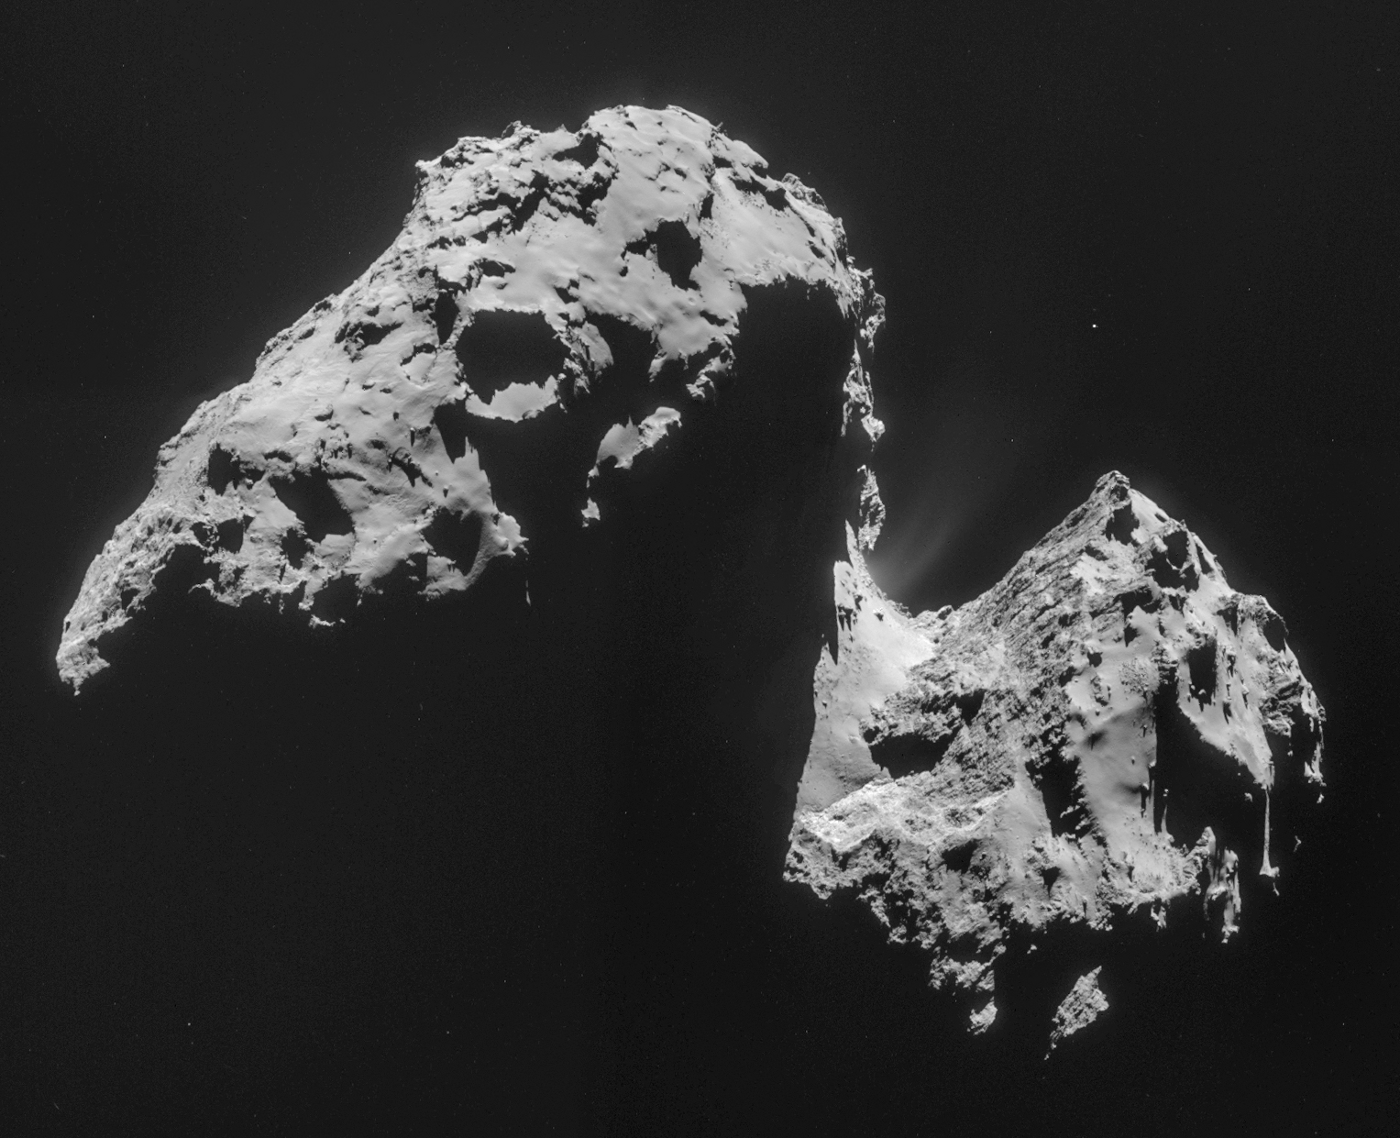 Philae Comet Lander Failed in Sample-Drilling Attempt, Might Try Again